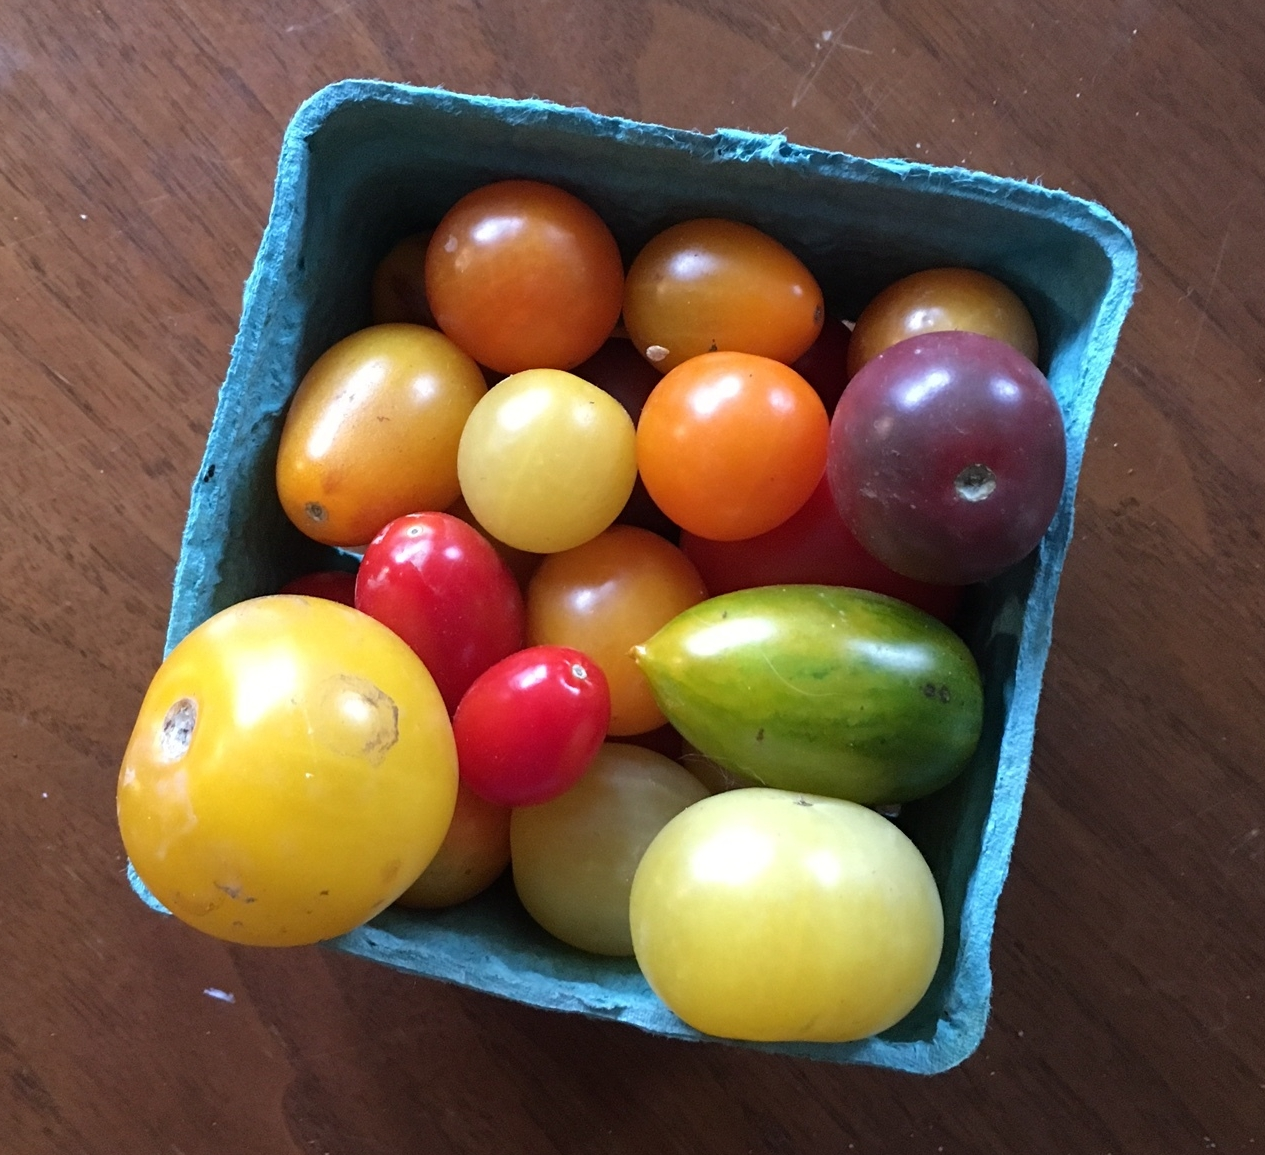 One of my favorite things this summer has been bringing delicious Jersey tomatoes home, either from local farm markets, or neighbor's yards. I like these cardboard containers, which I reuse or compost.